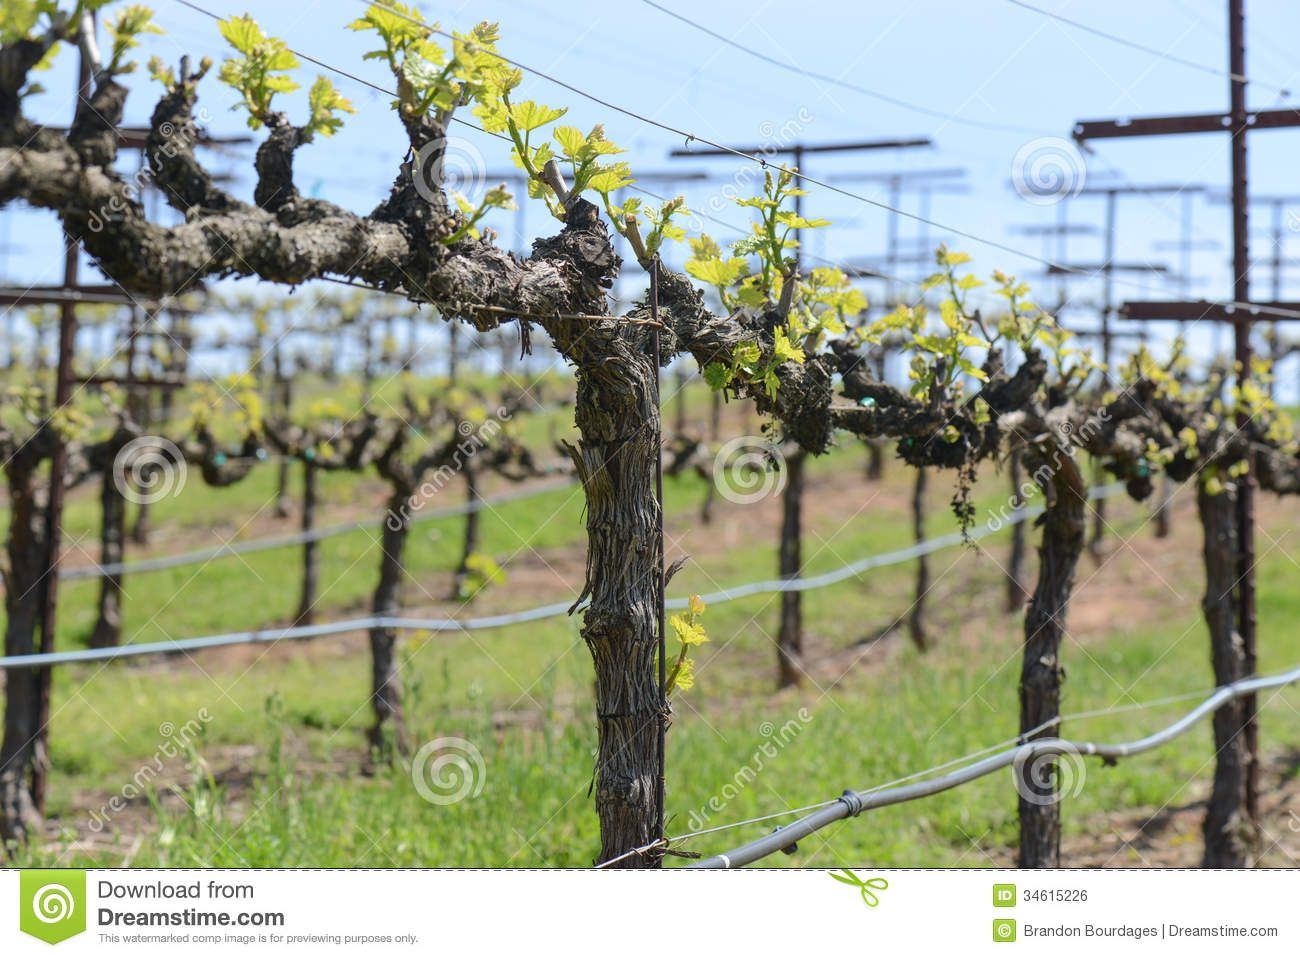 grapevine trellis designs Royalty Free Stock Image Grapevine in